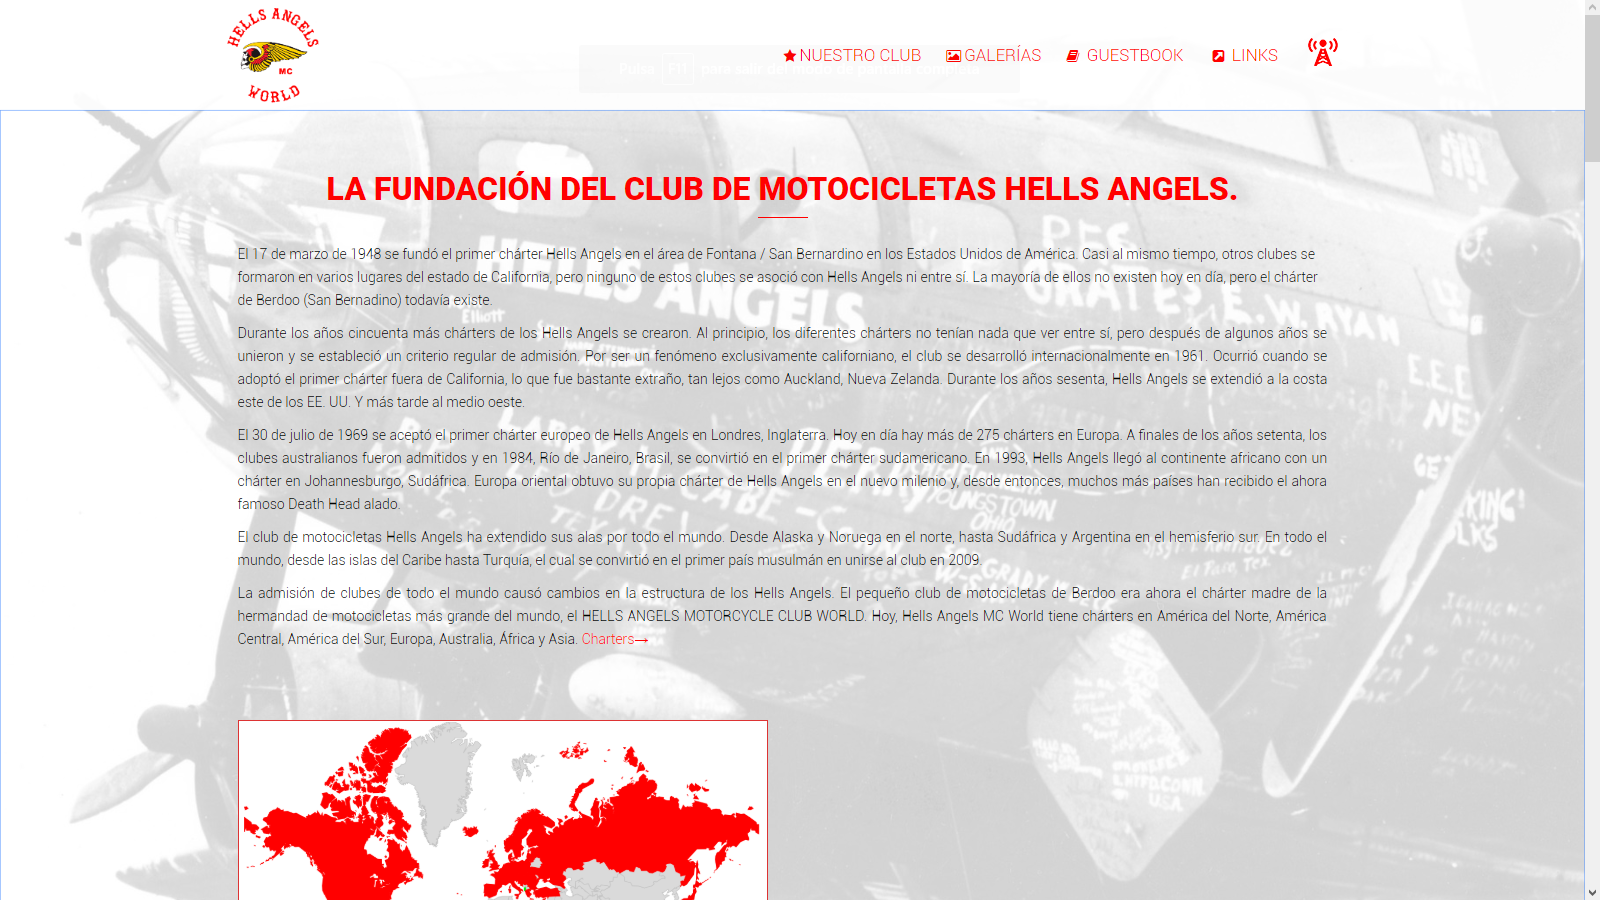 Hells Angels Motorcycle Club Colorado 1% Unknown